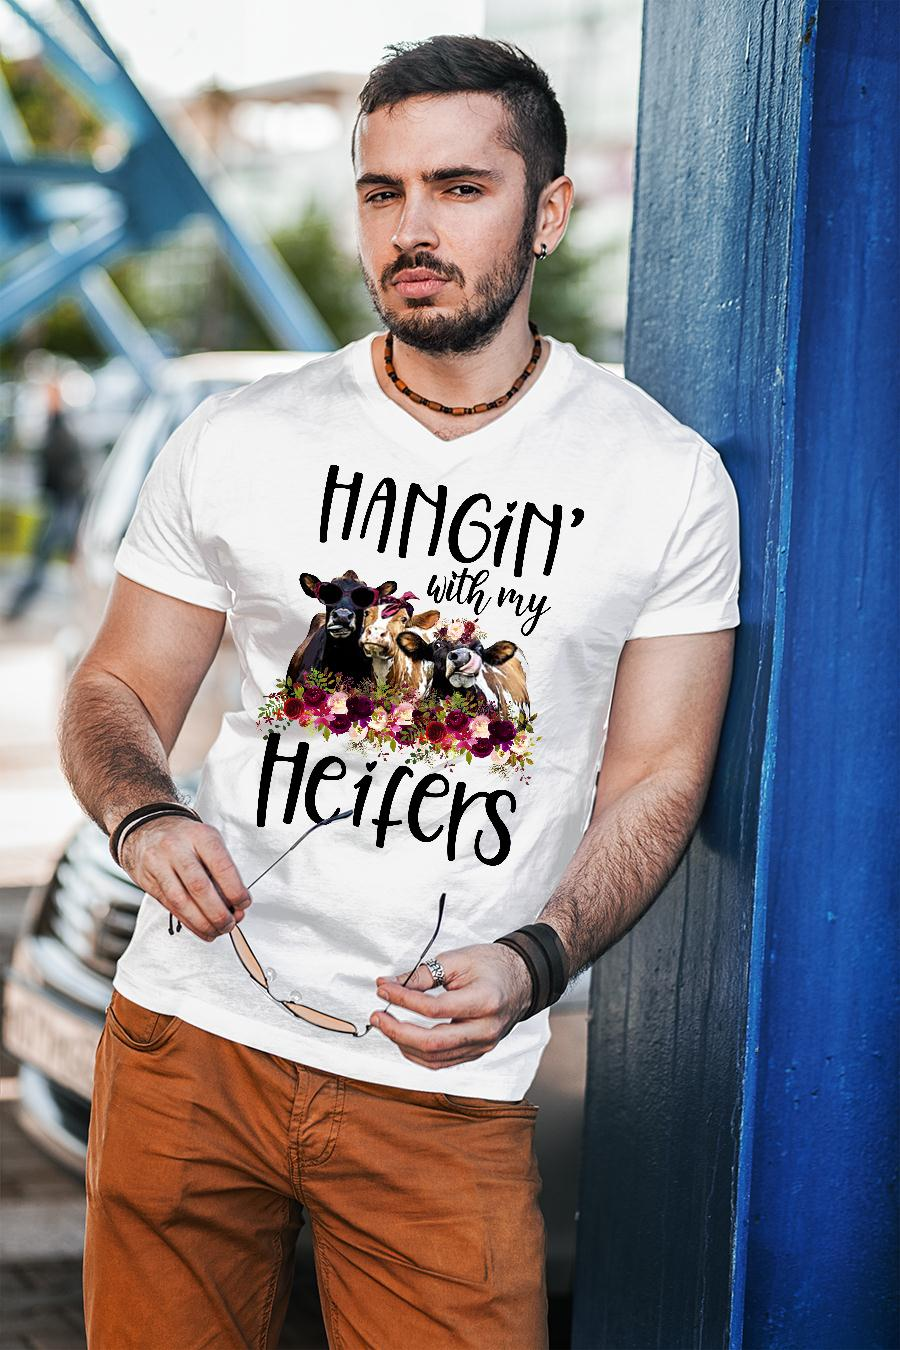 Hangin with my cow heifers Floral shirt unisex